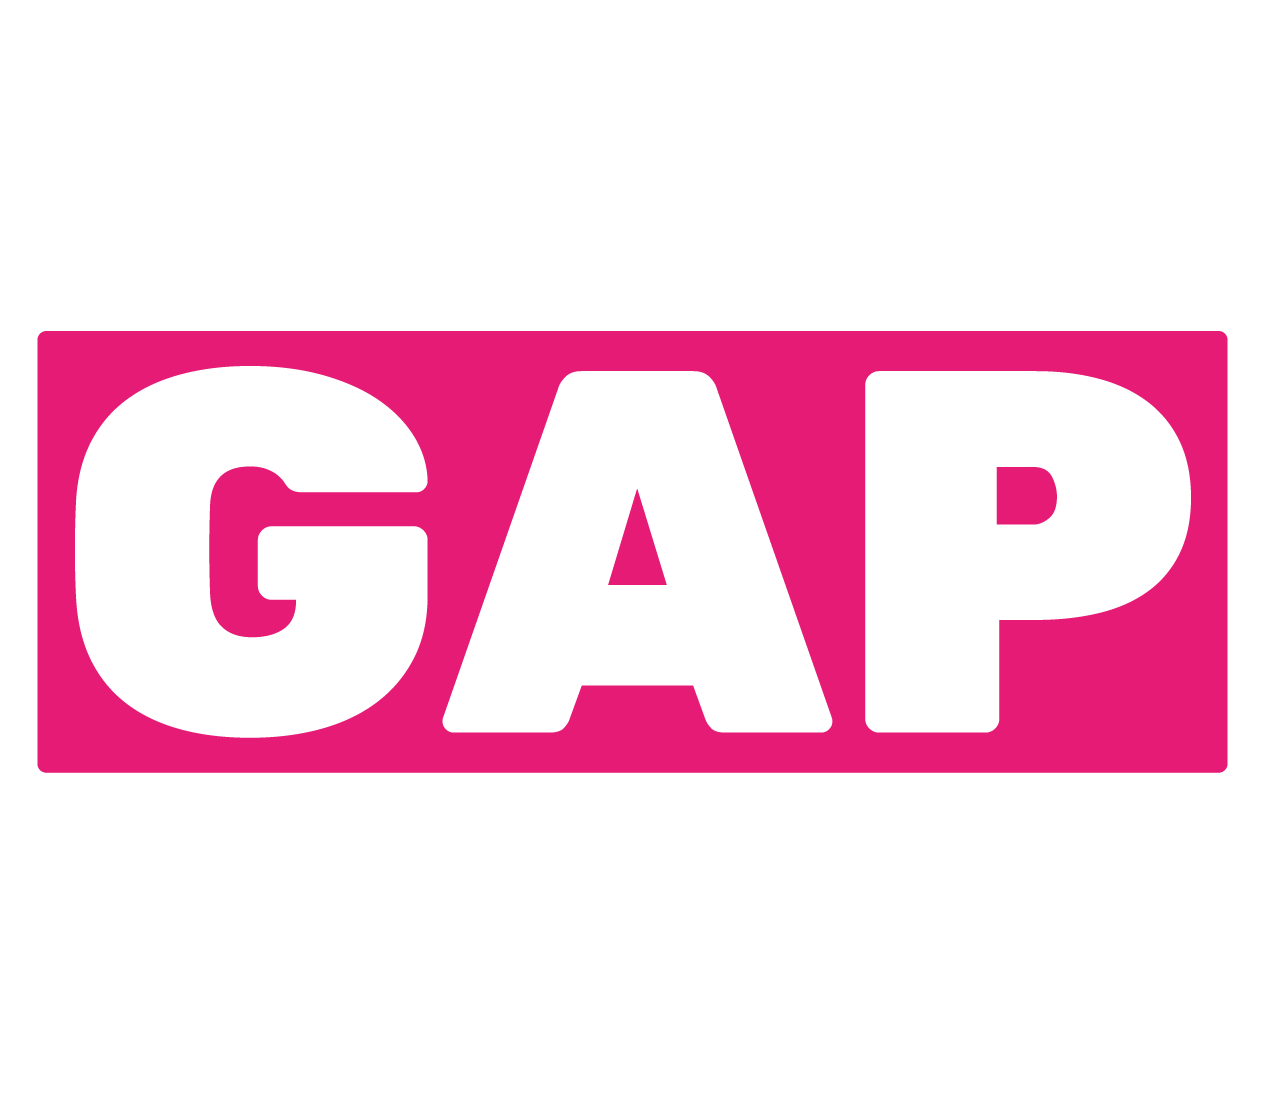 HGAP_logo_-_stacked_-_white_pink_clear.png